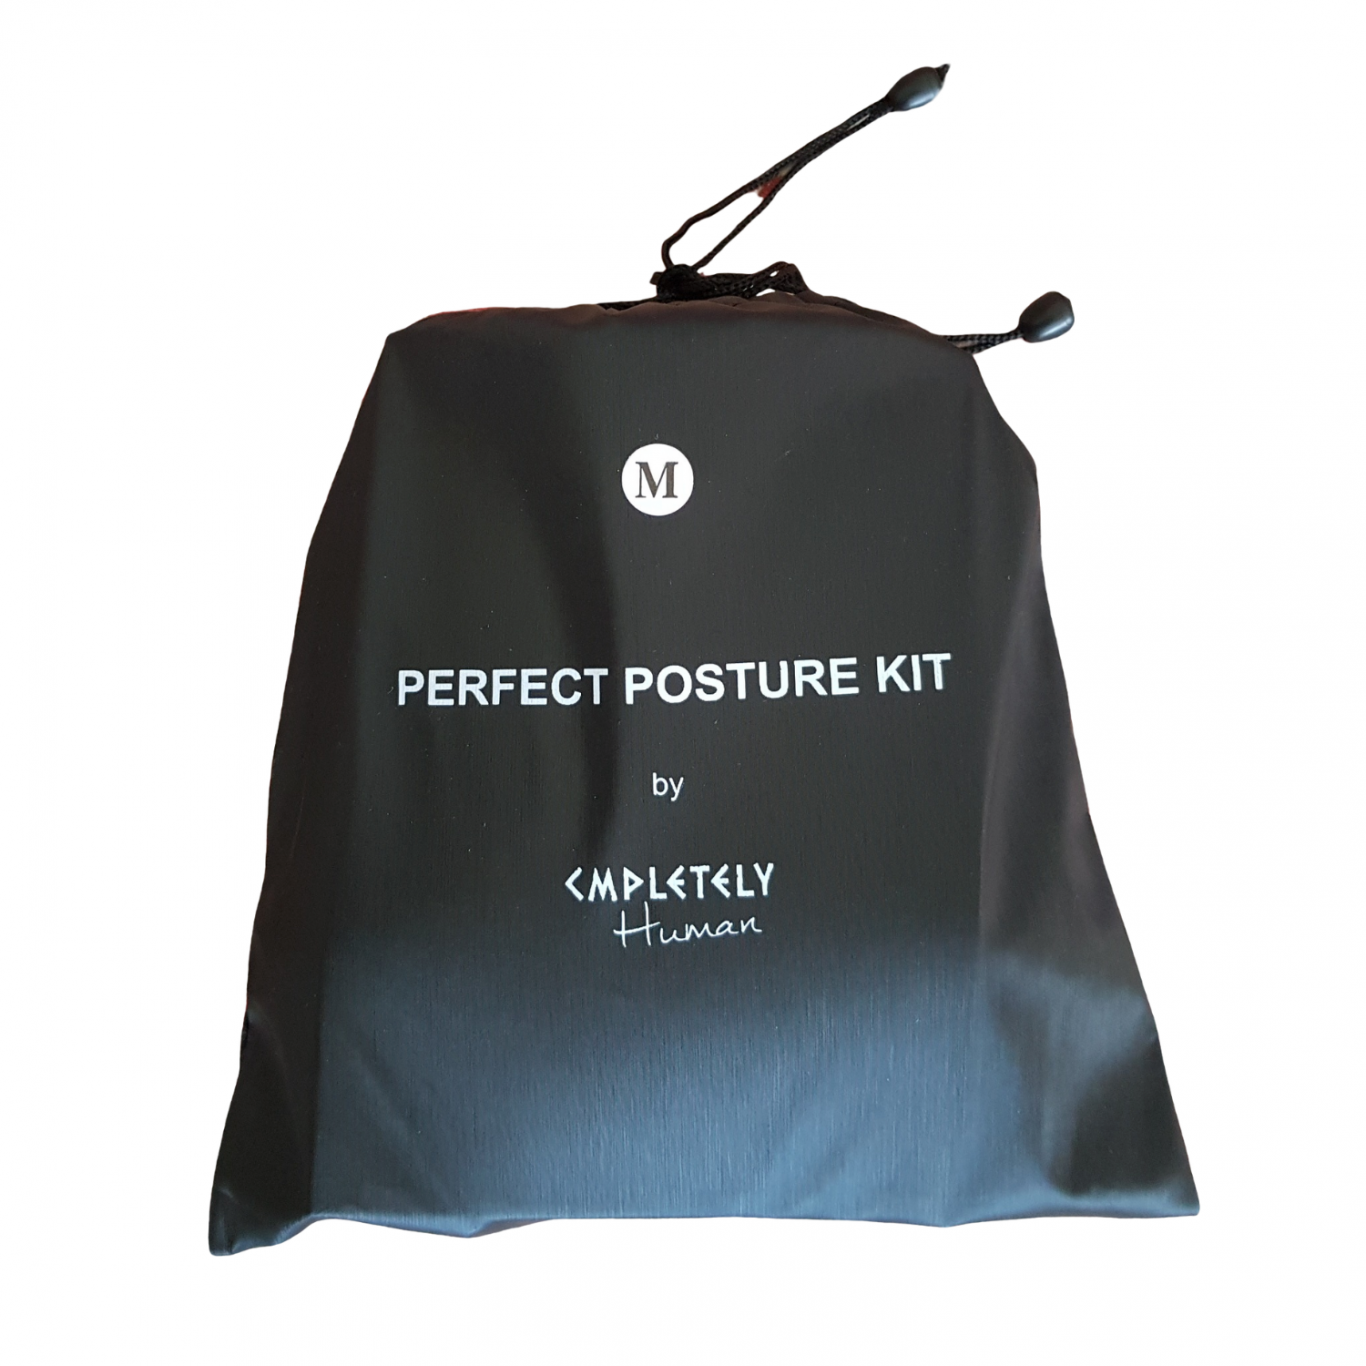 Perfect-posture-kit-bag